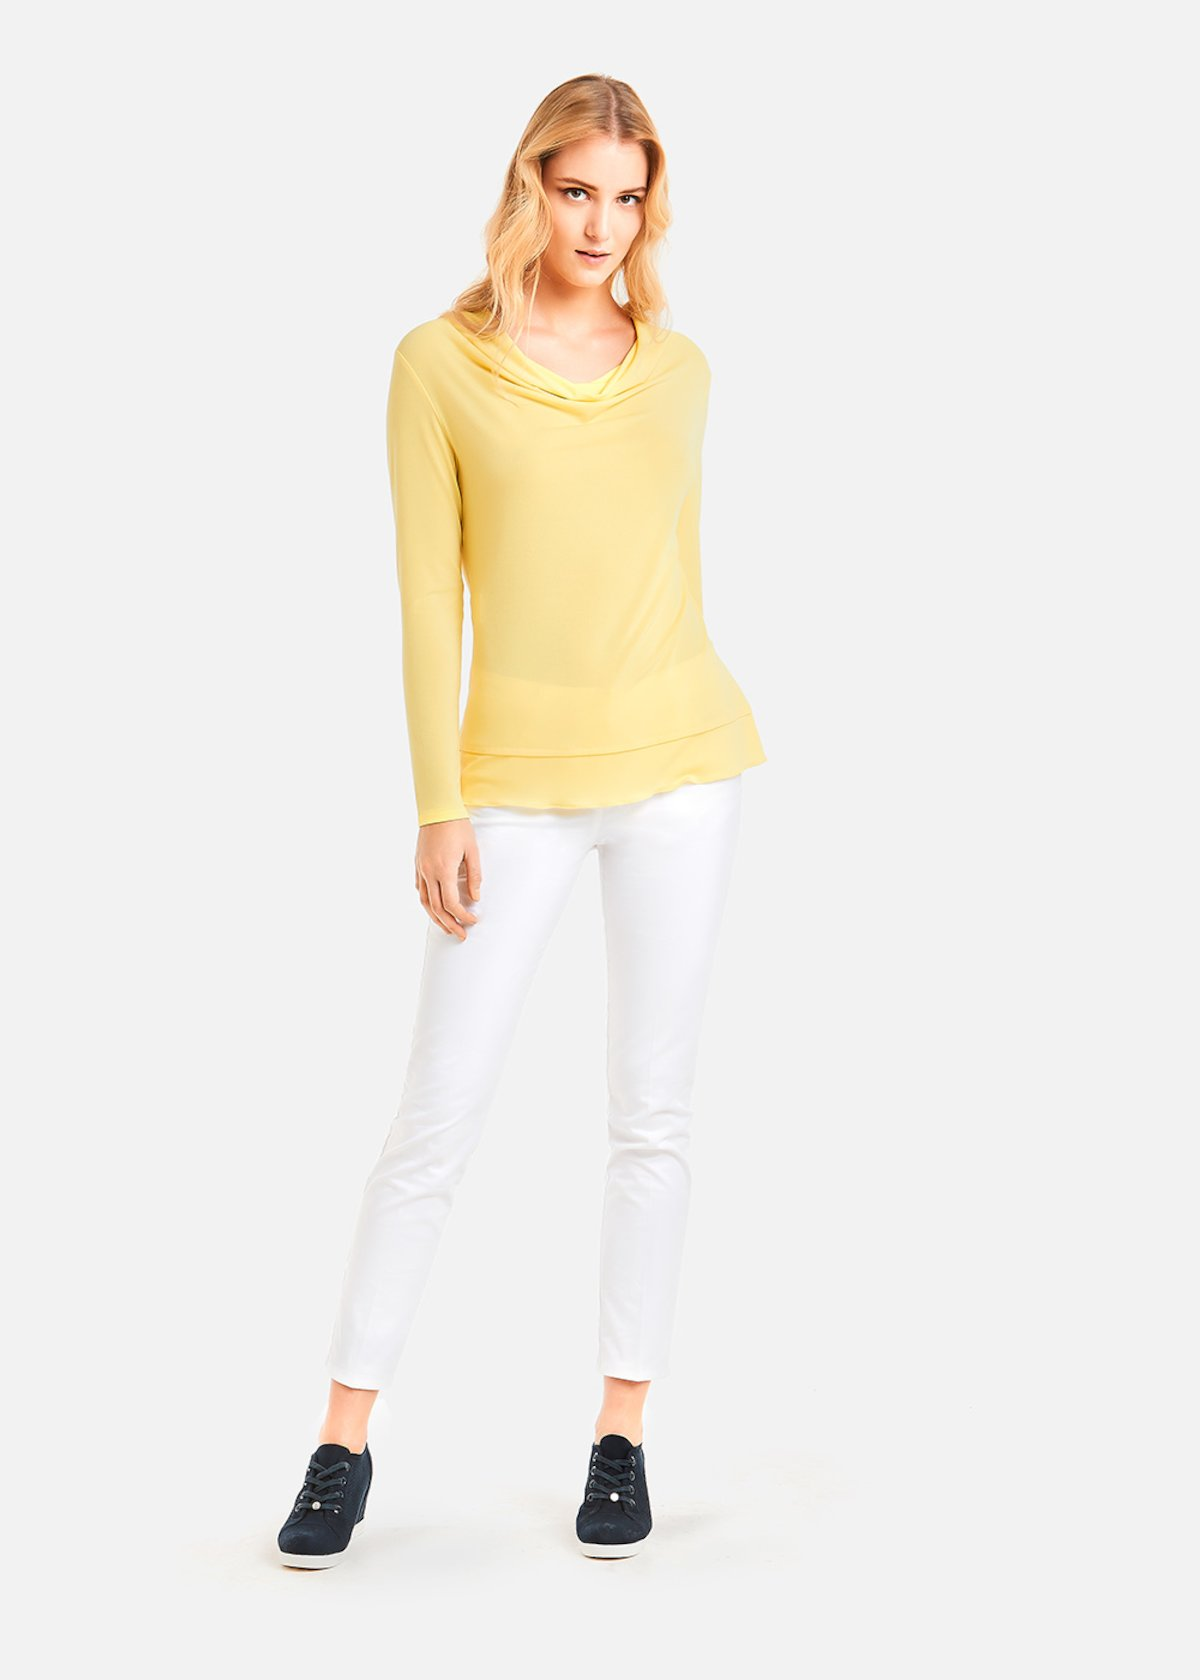 Sade hooded neckline t-shirt